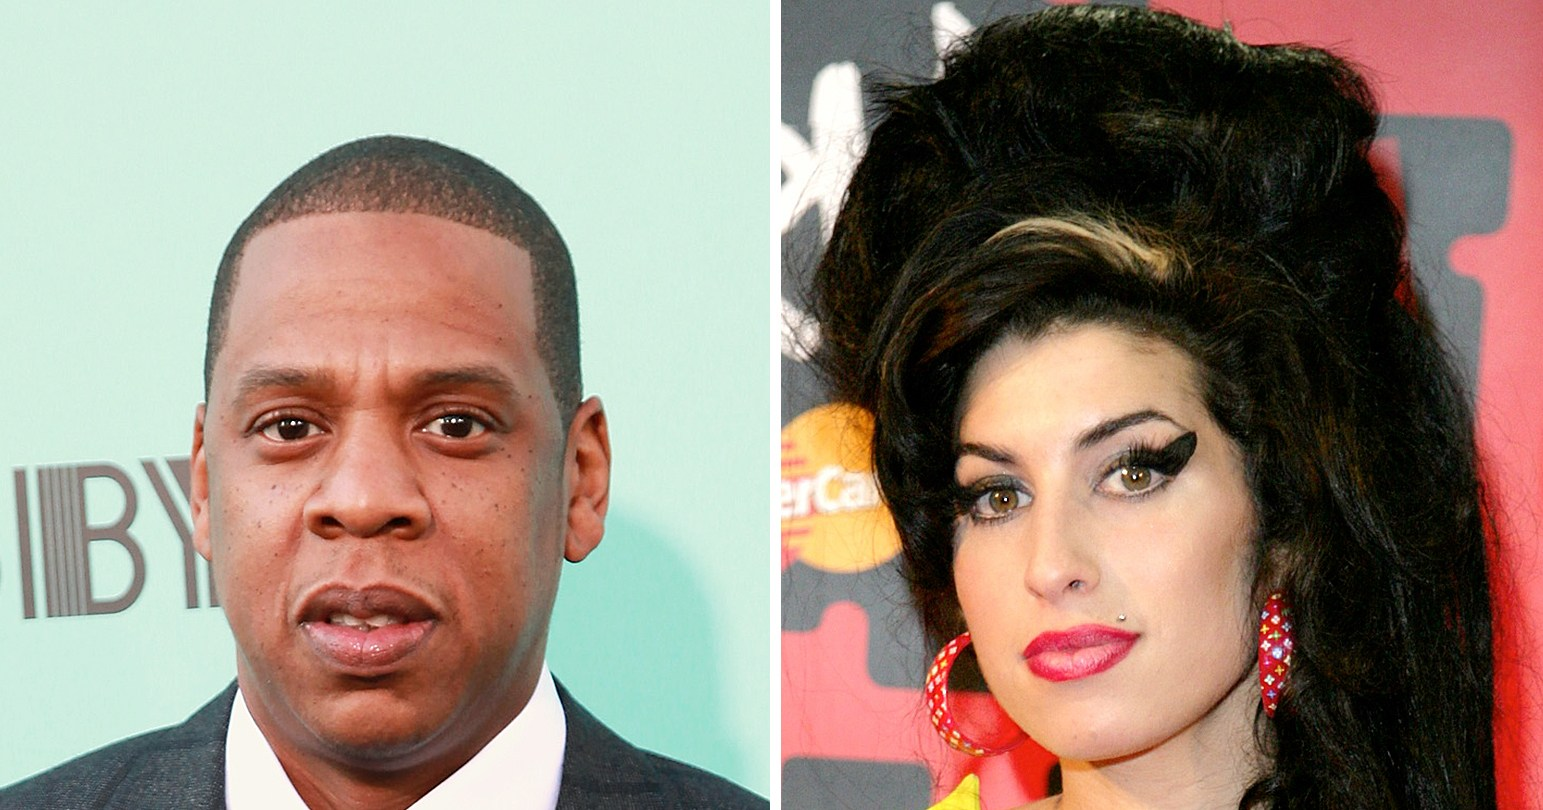 Jay-Z Told Amy Winehouse to 'Stay With Us' When They First Met